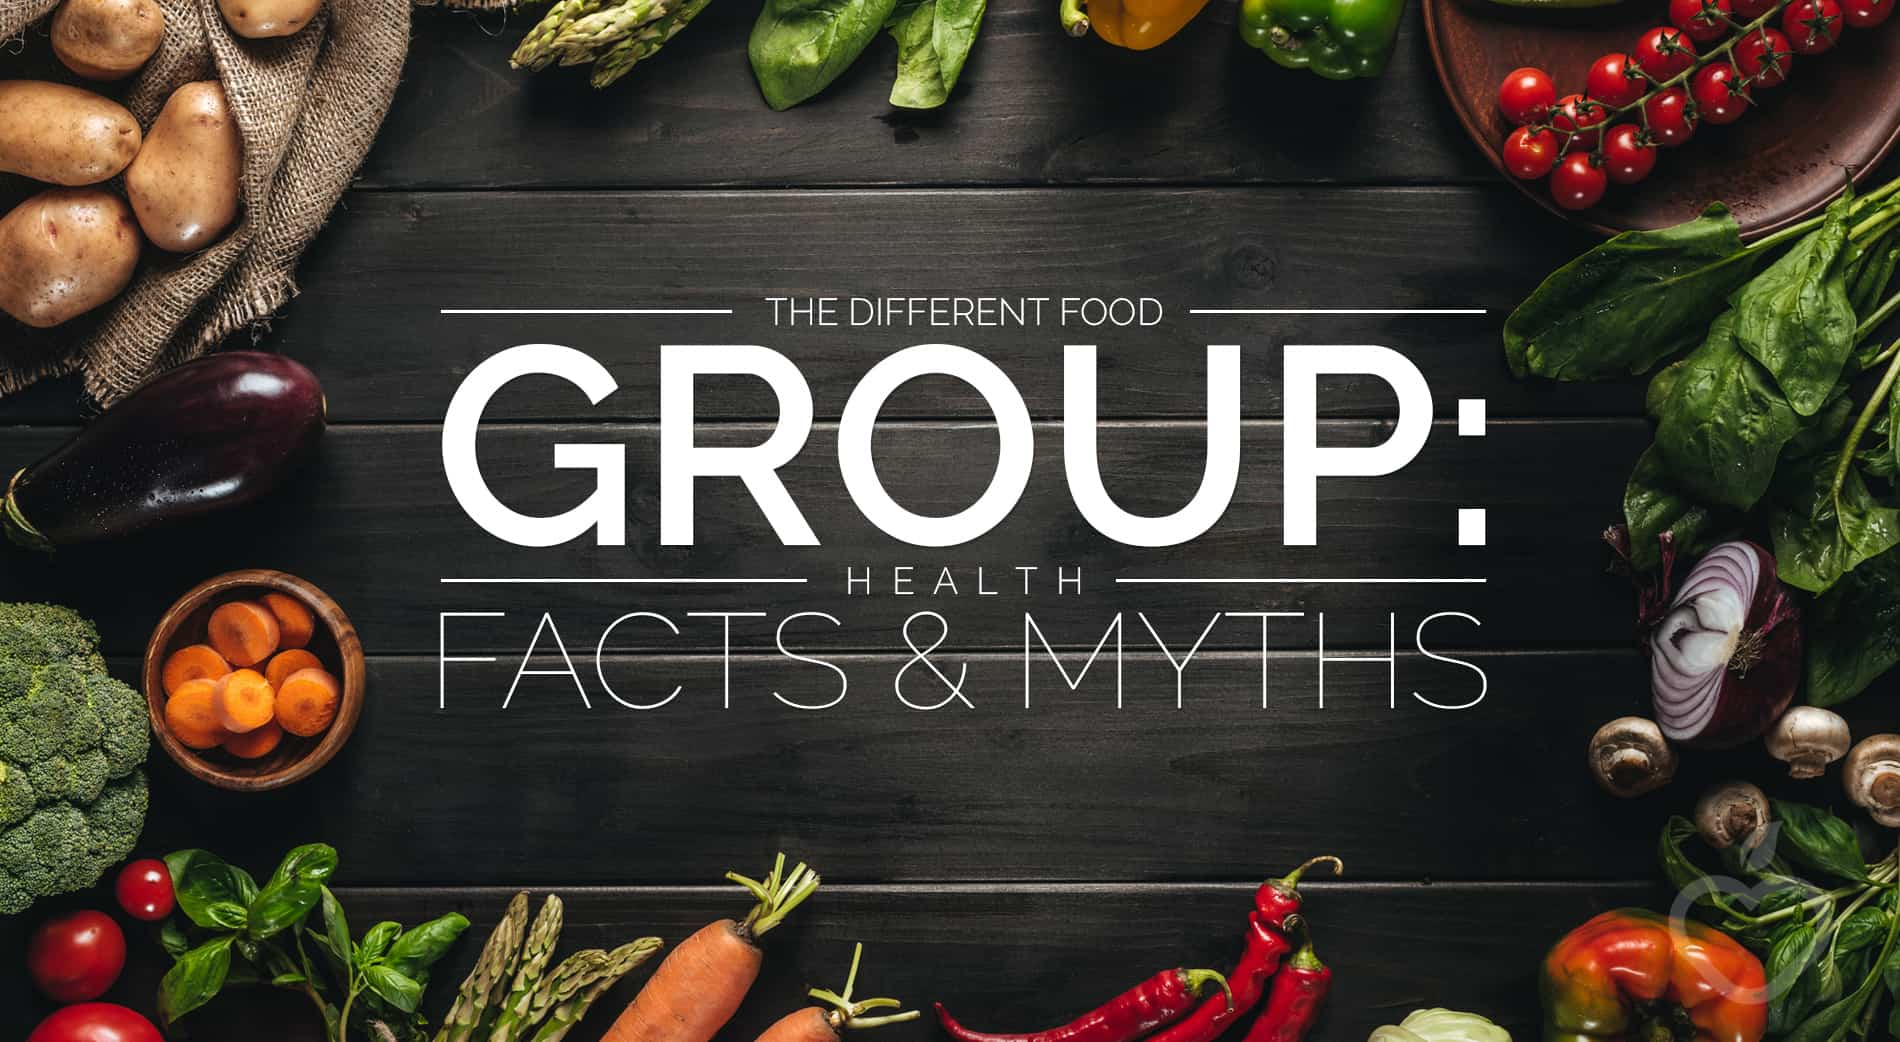 Food Group Image Design 1 - The Different Food Group: Health Facts and Myths